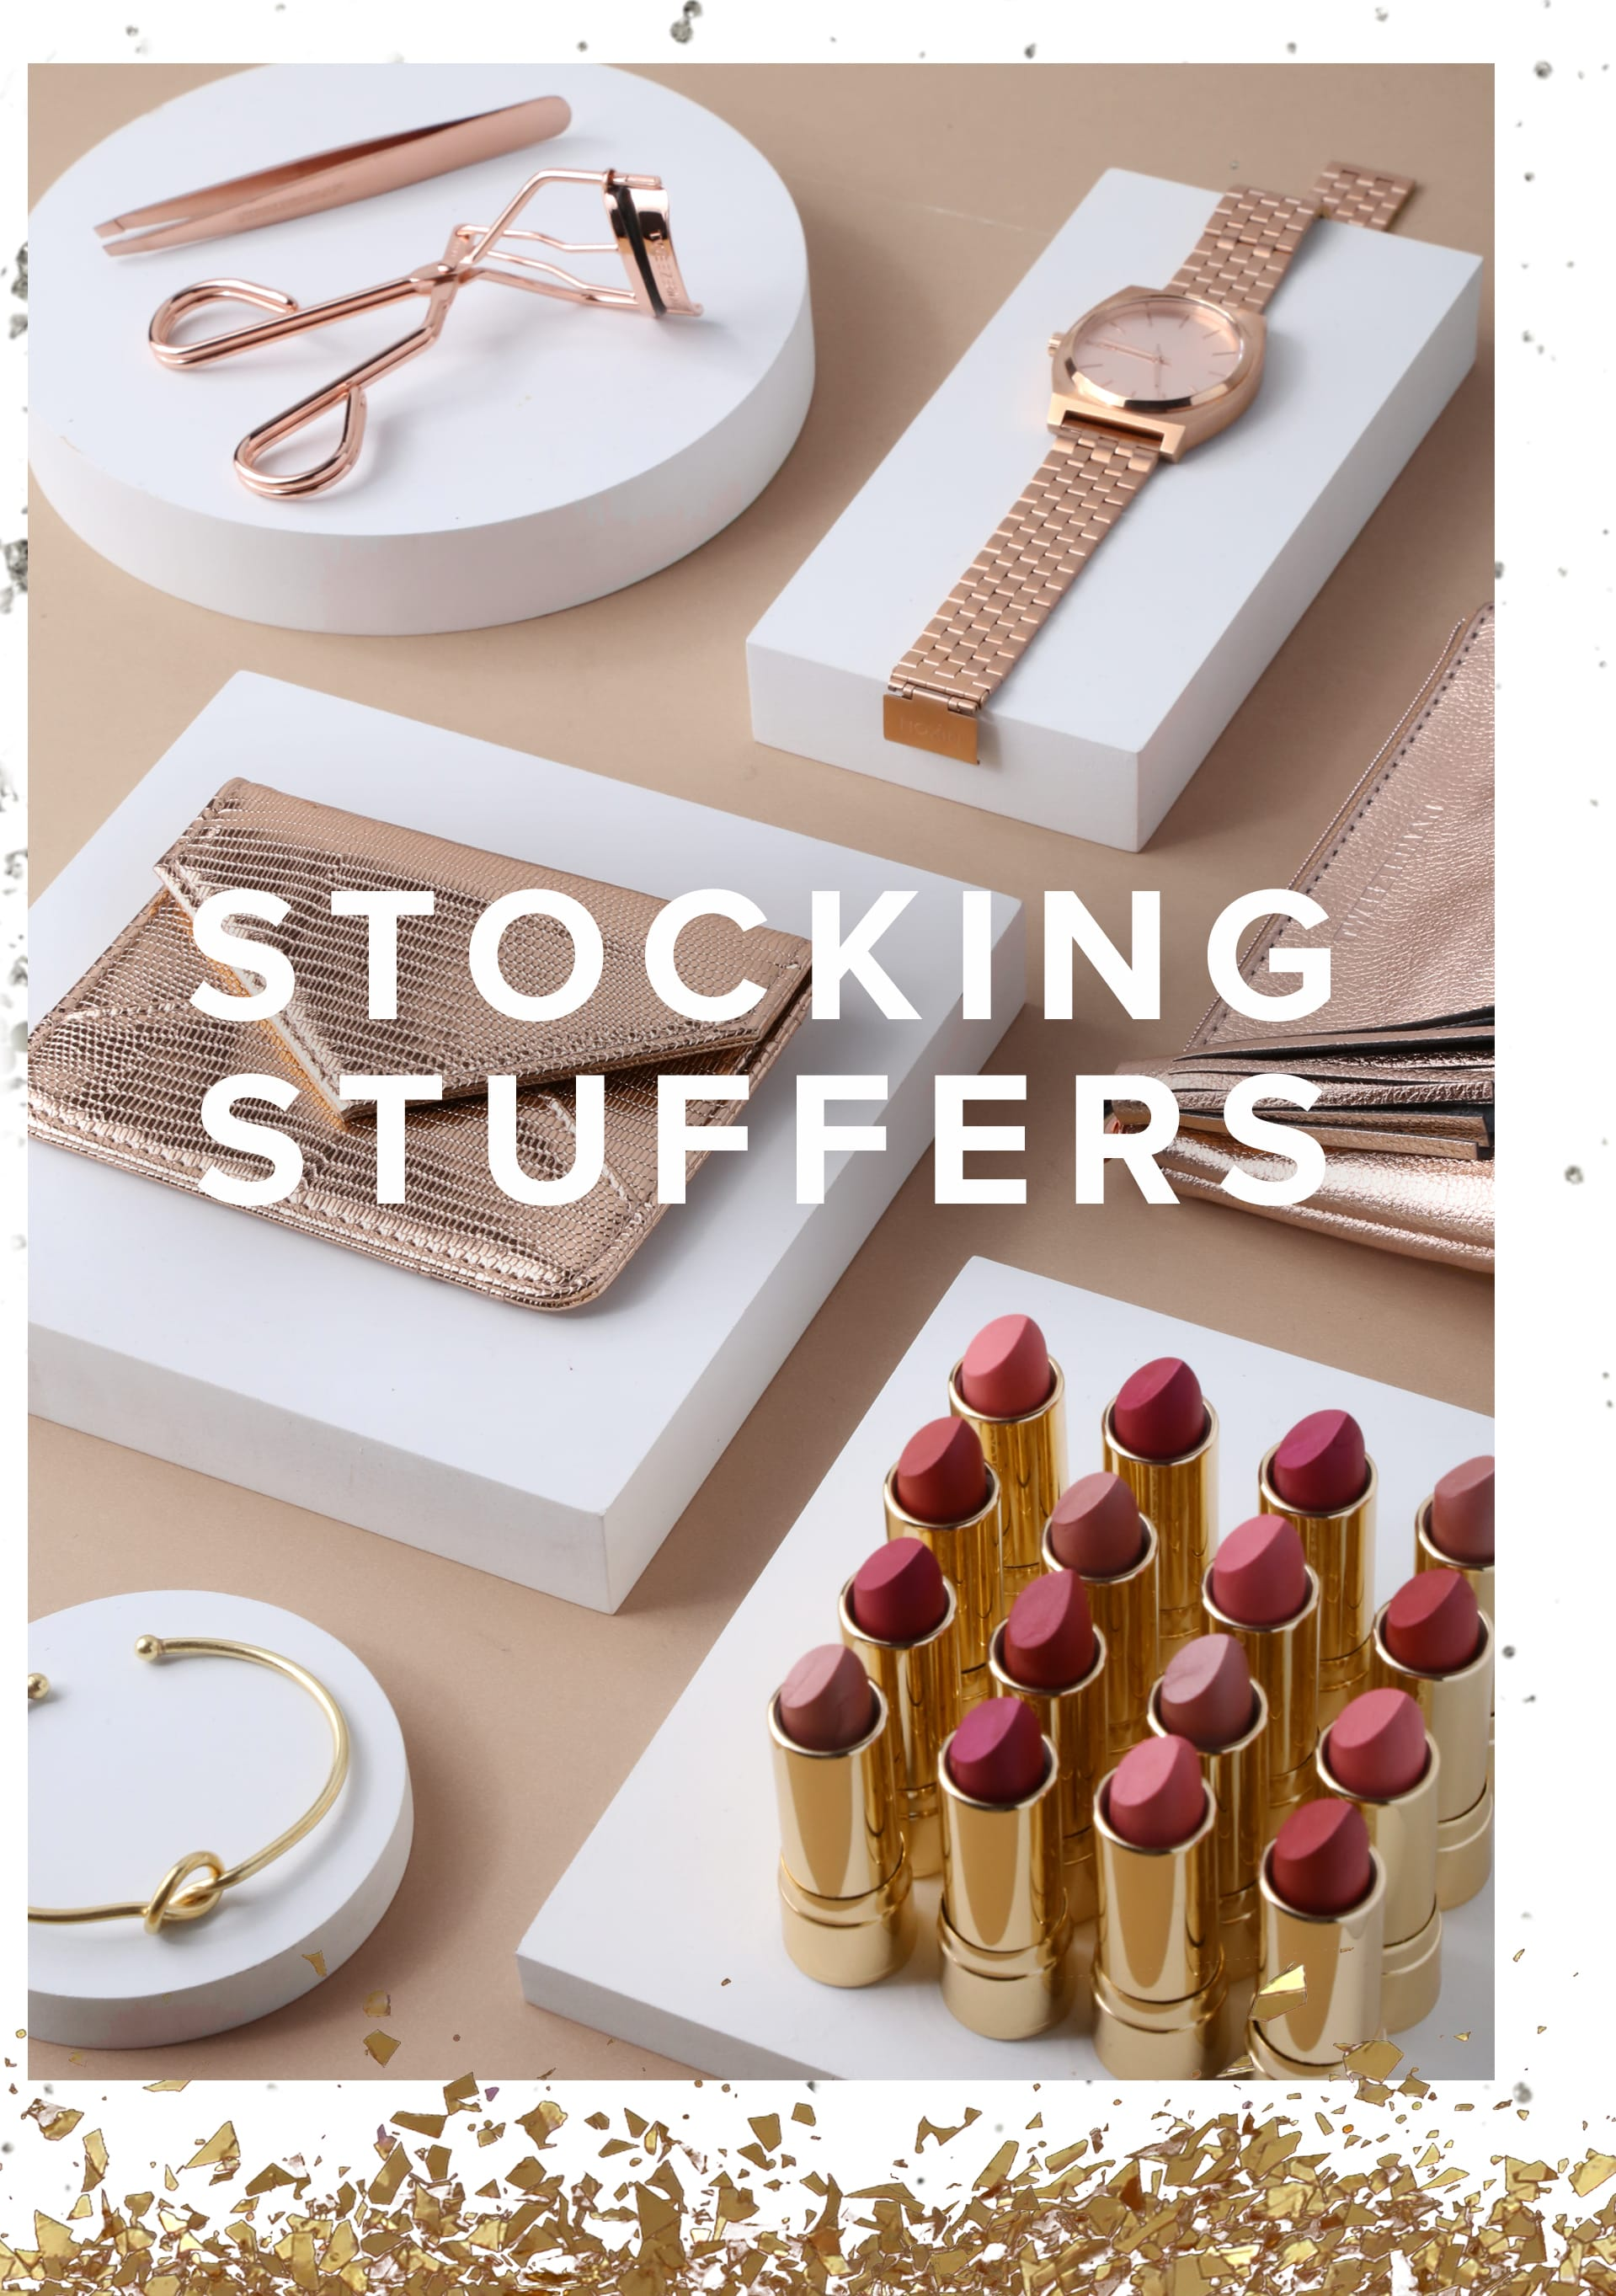 Shop Stocking Stuffers and Small Gifts for Women.